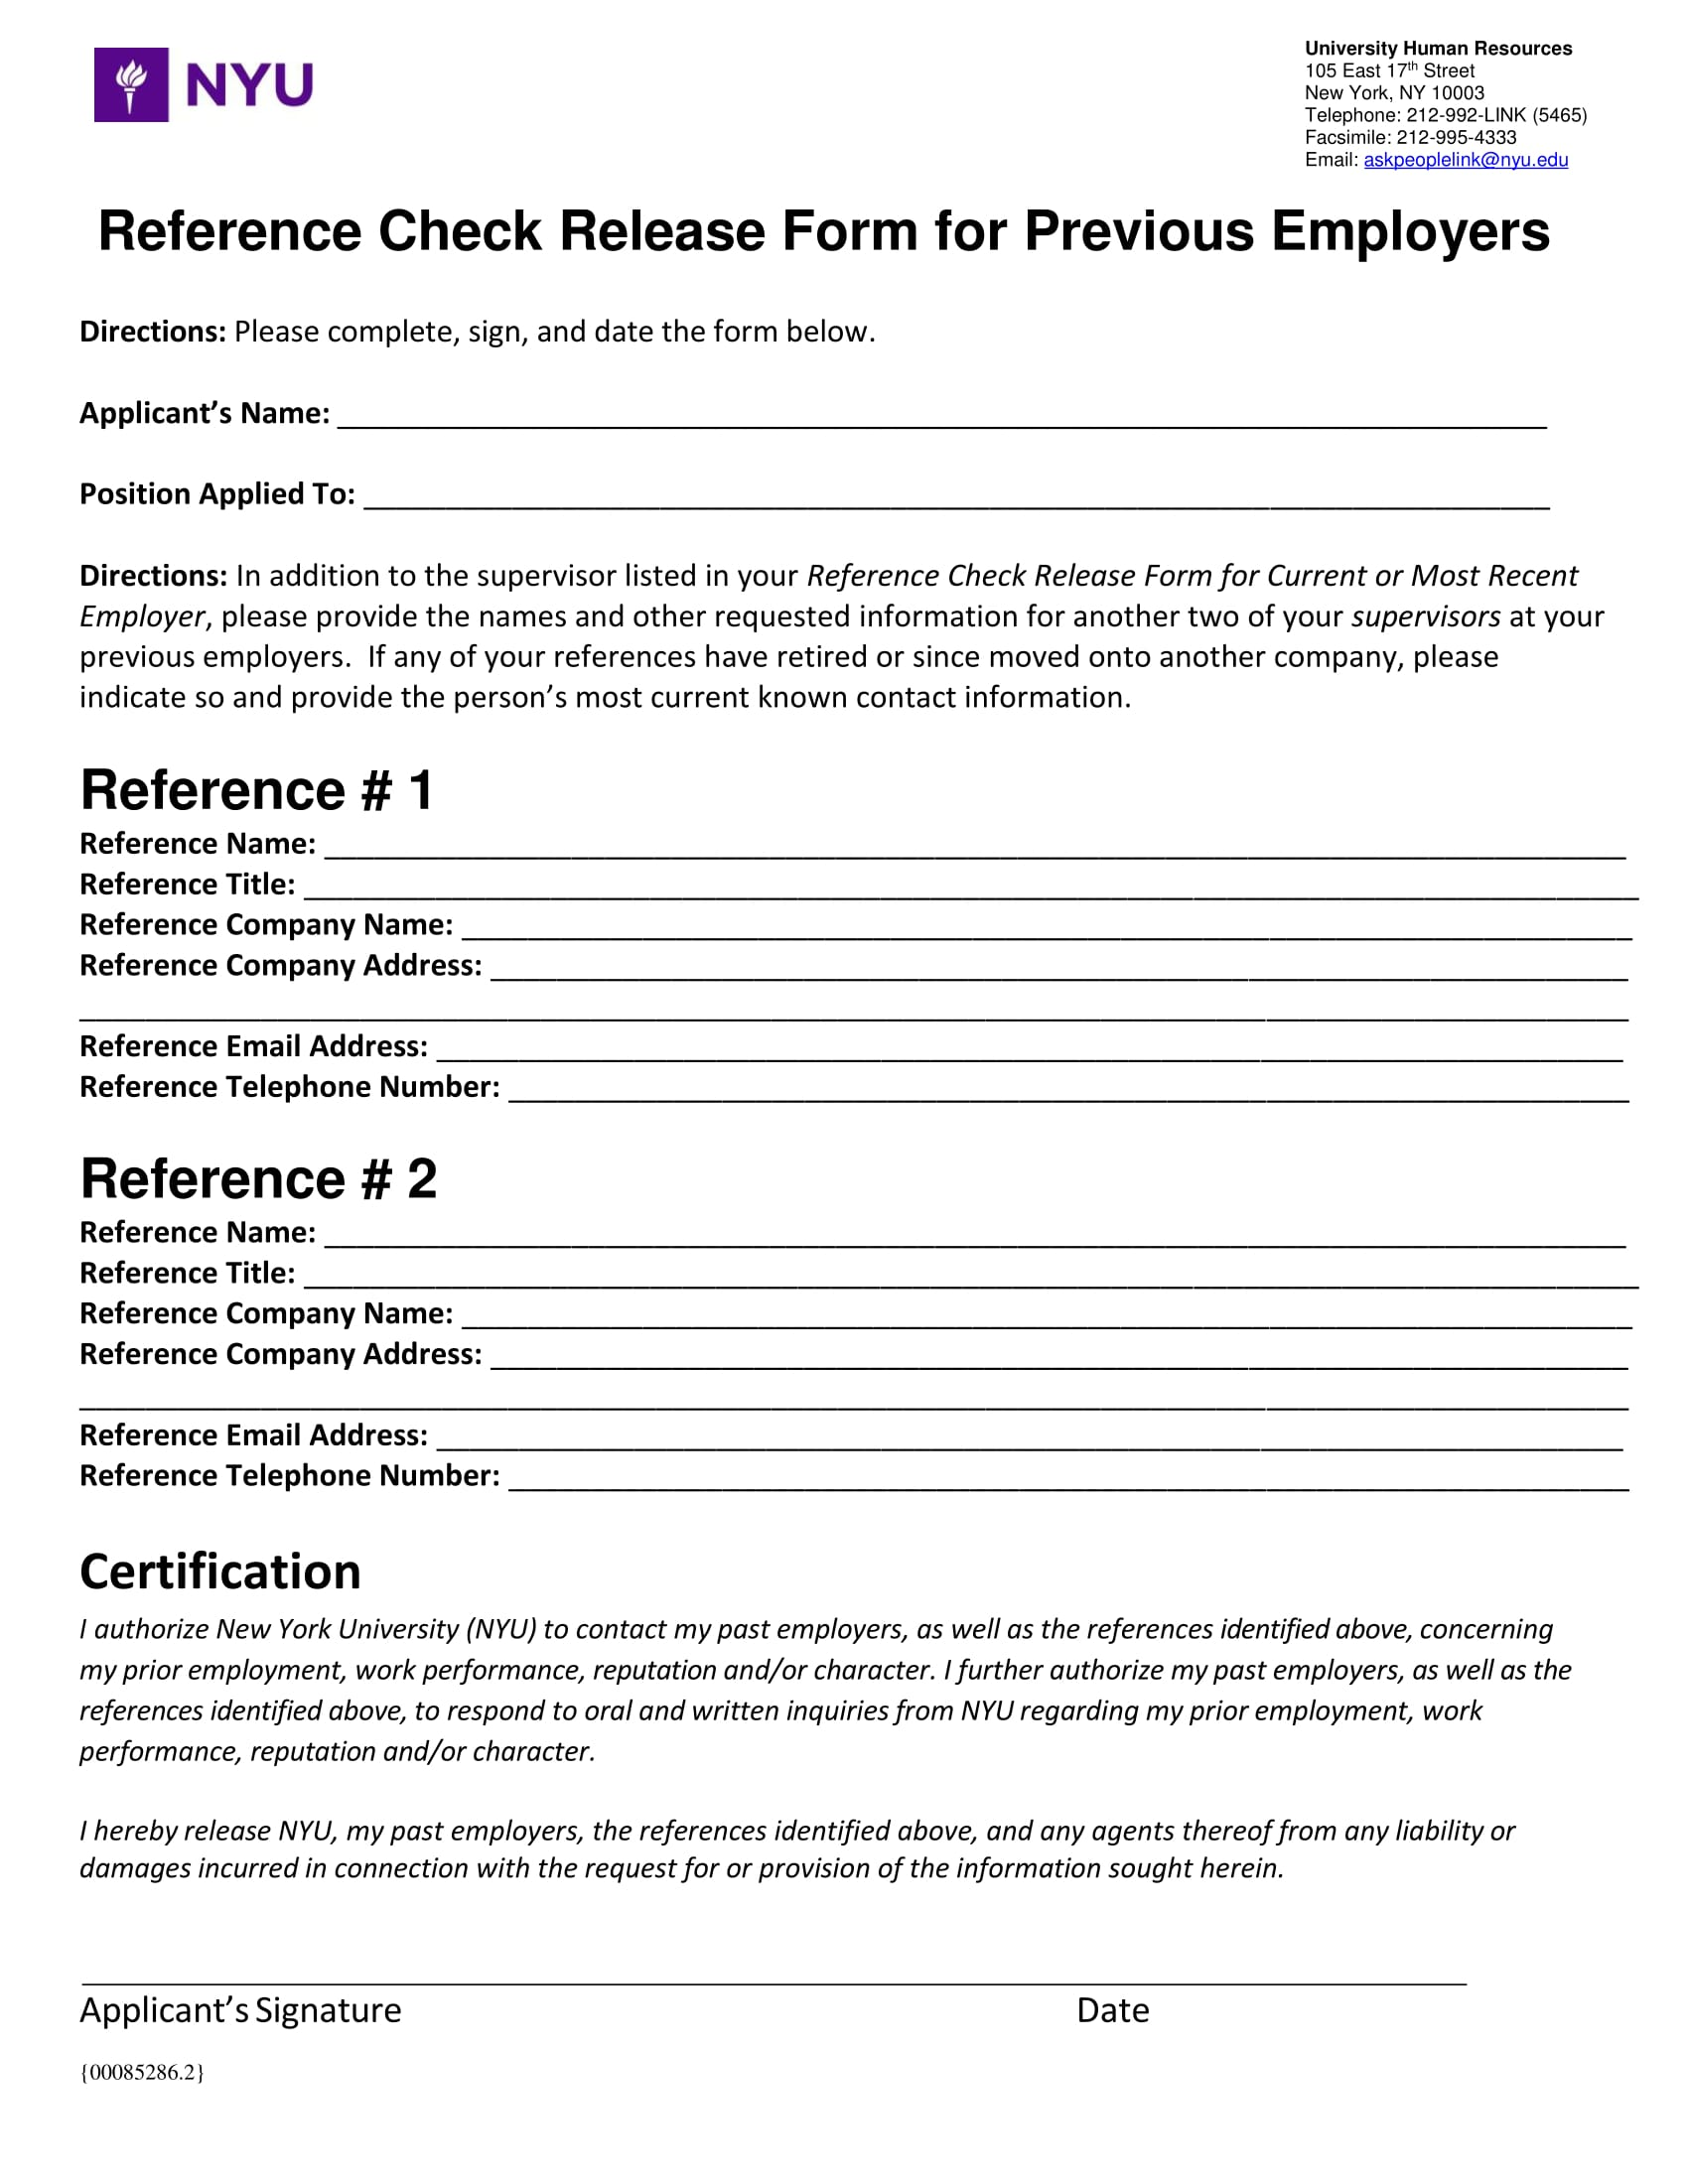 Best Sample Reference Check Template Pictures Resume Samples Previous  Employer Reference Check Release Form 1 Sample